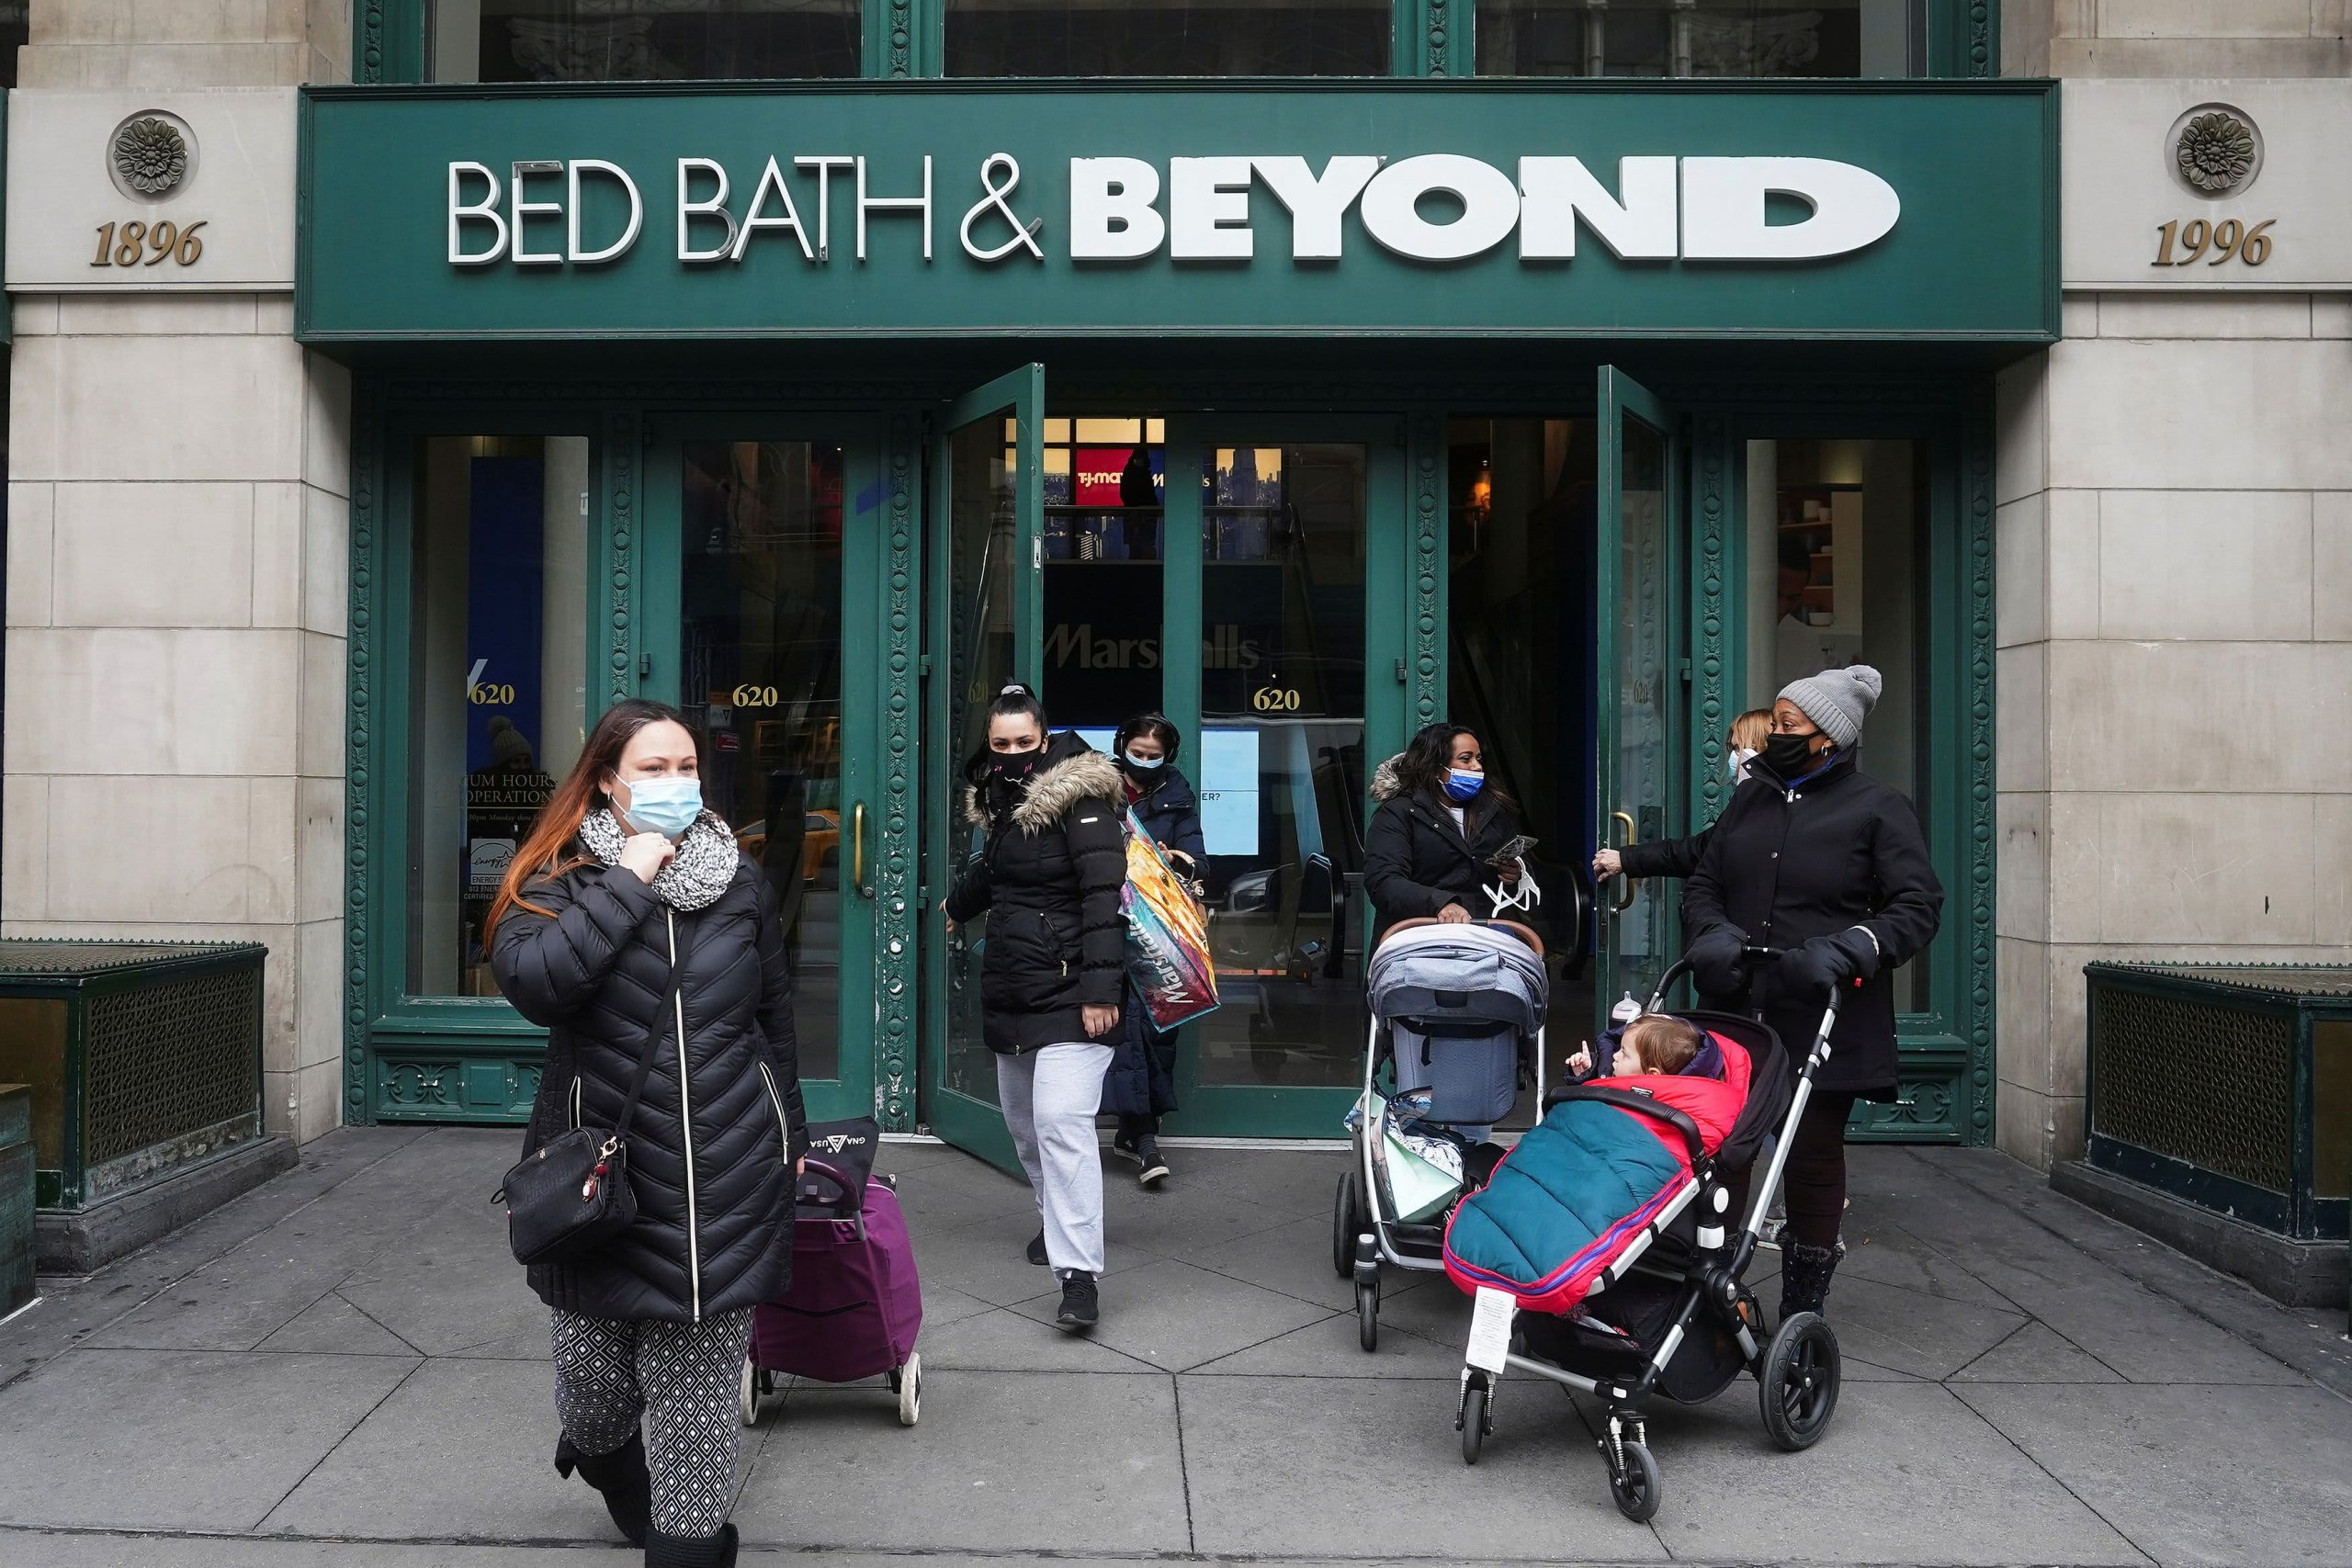 Bed Bath & Beyond (BBBY) shares tank on supply chain issues